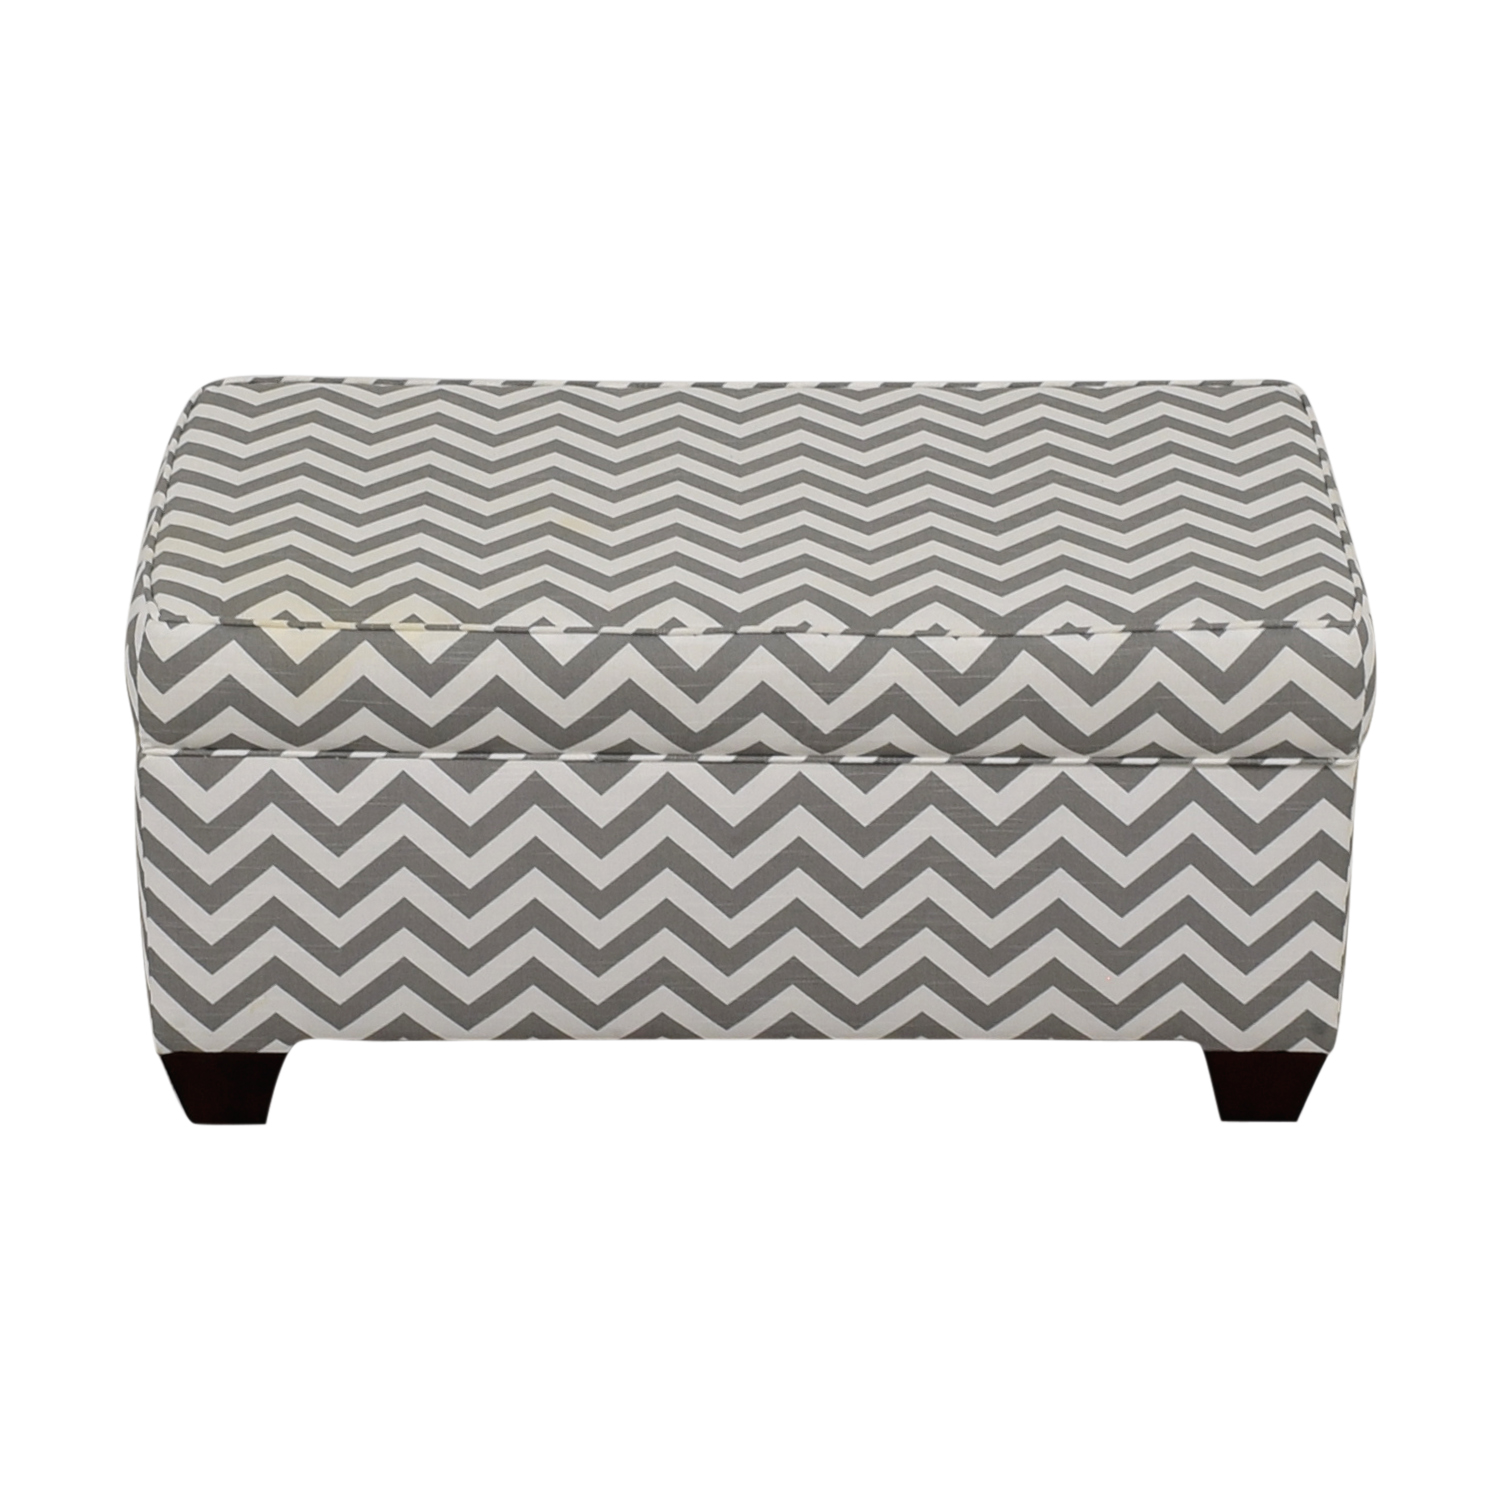 Target Target Grey and White Storage Bench or Ottoman for sale